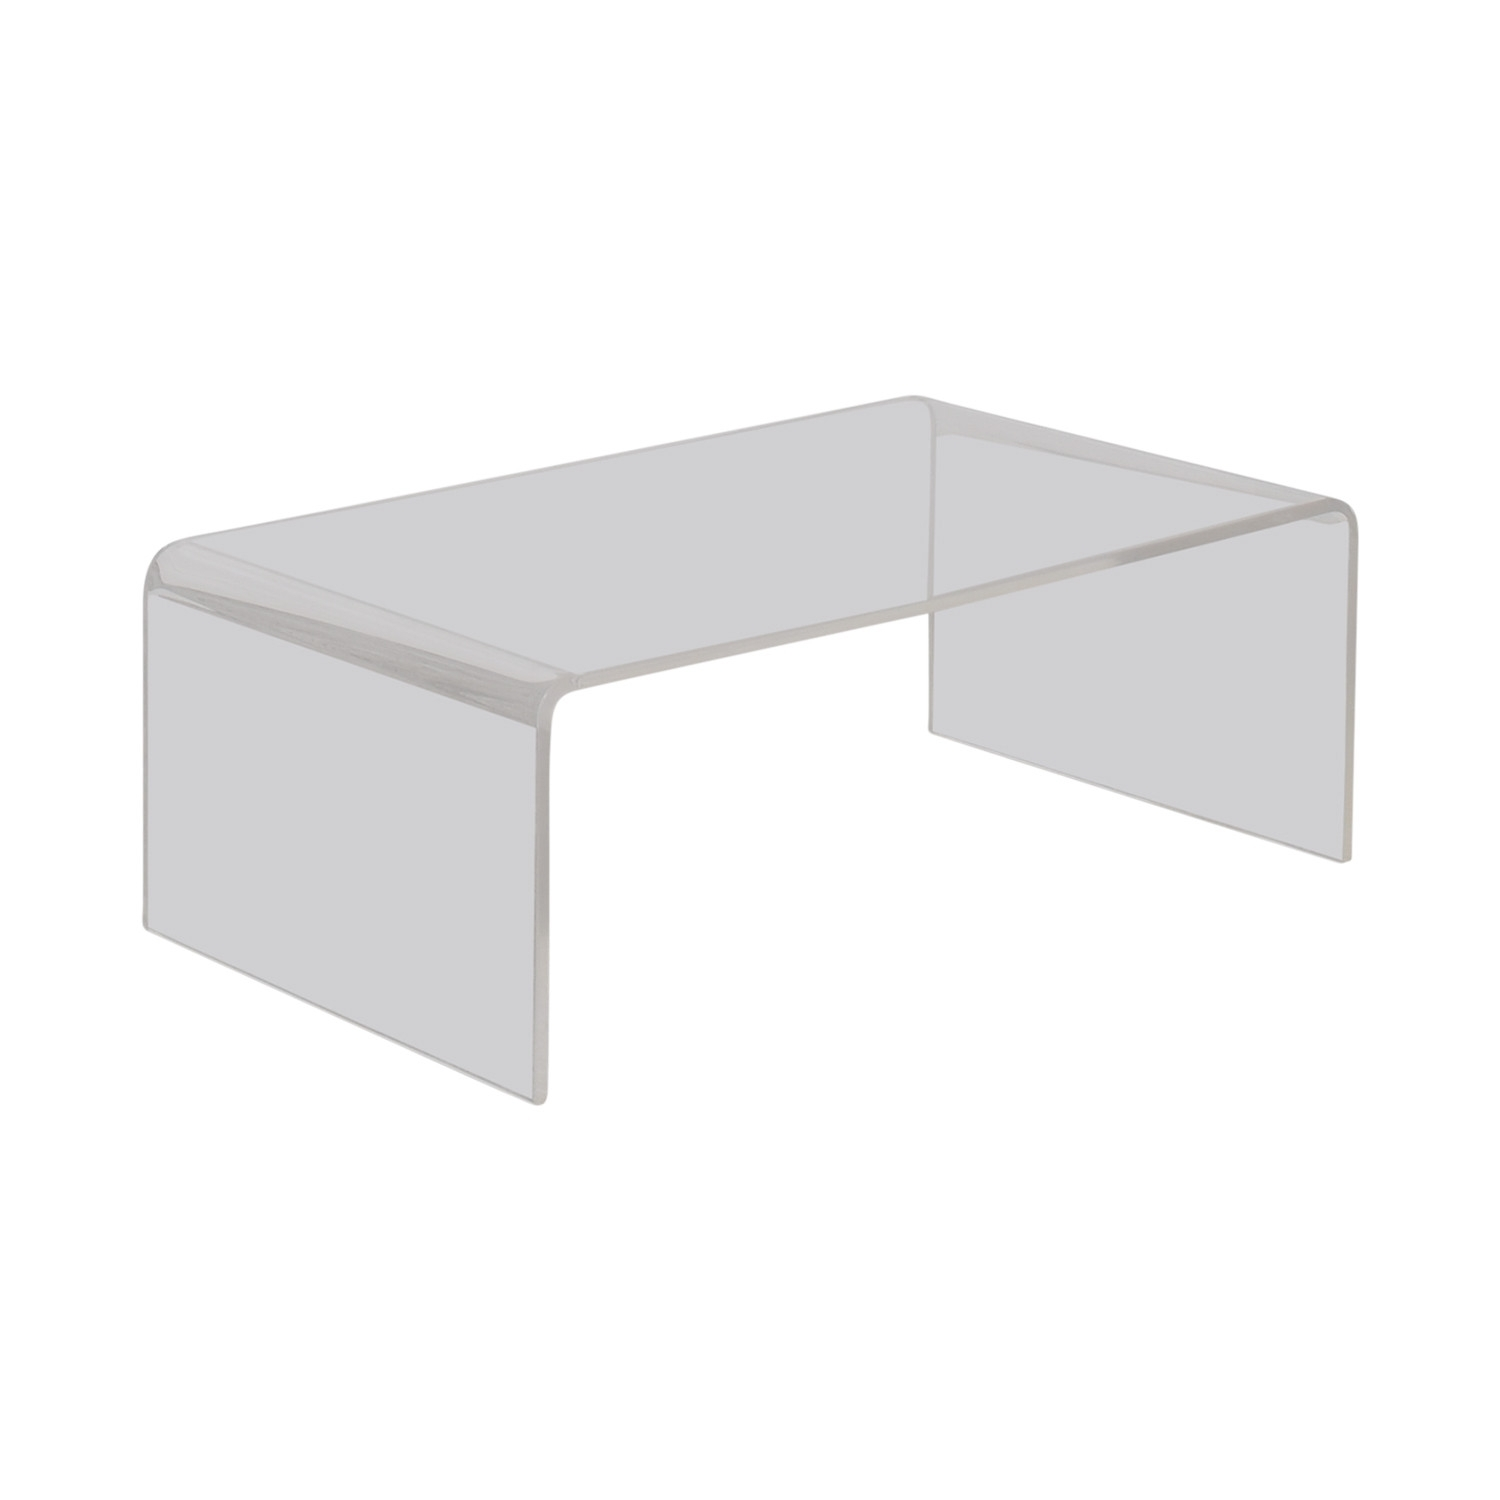 Acrylic Coffee Table For Sale Elegant 67% Off Cb2 Cb2 Peekaboo inside Peekaboo Acrylic Coffee Tables (Image 6 of 30)